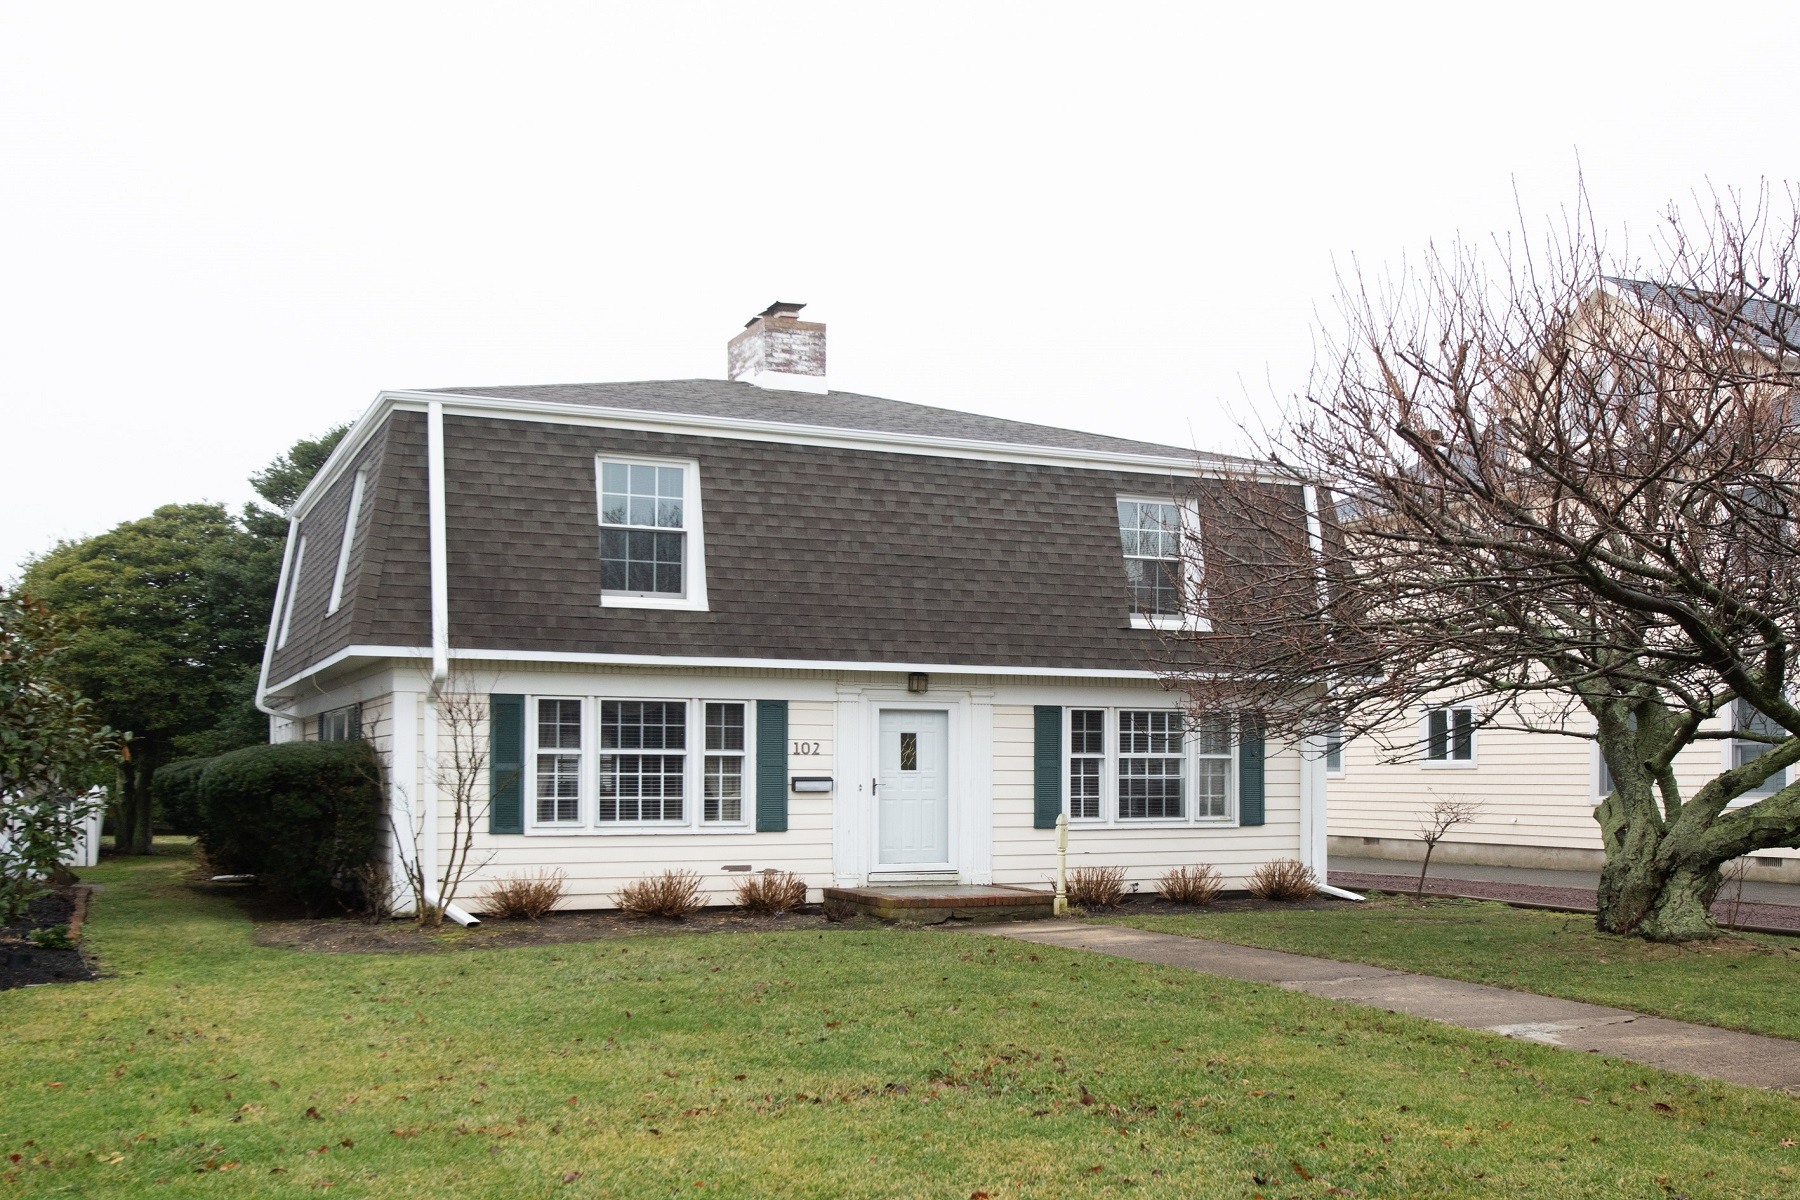 Single Family Homes for Sale at 102 Stockton Blvd. 102 Stockton Boulevard Sea Girt, New Jersey 08750 United States